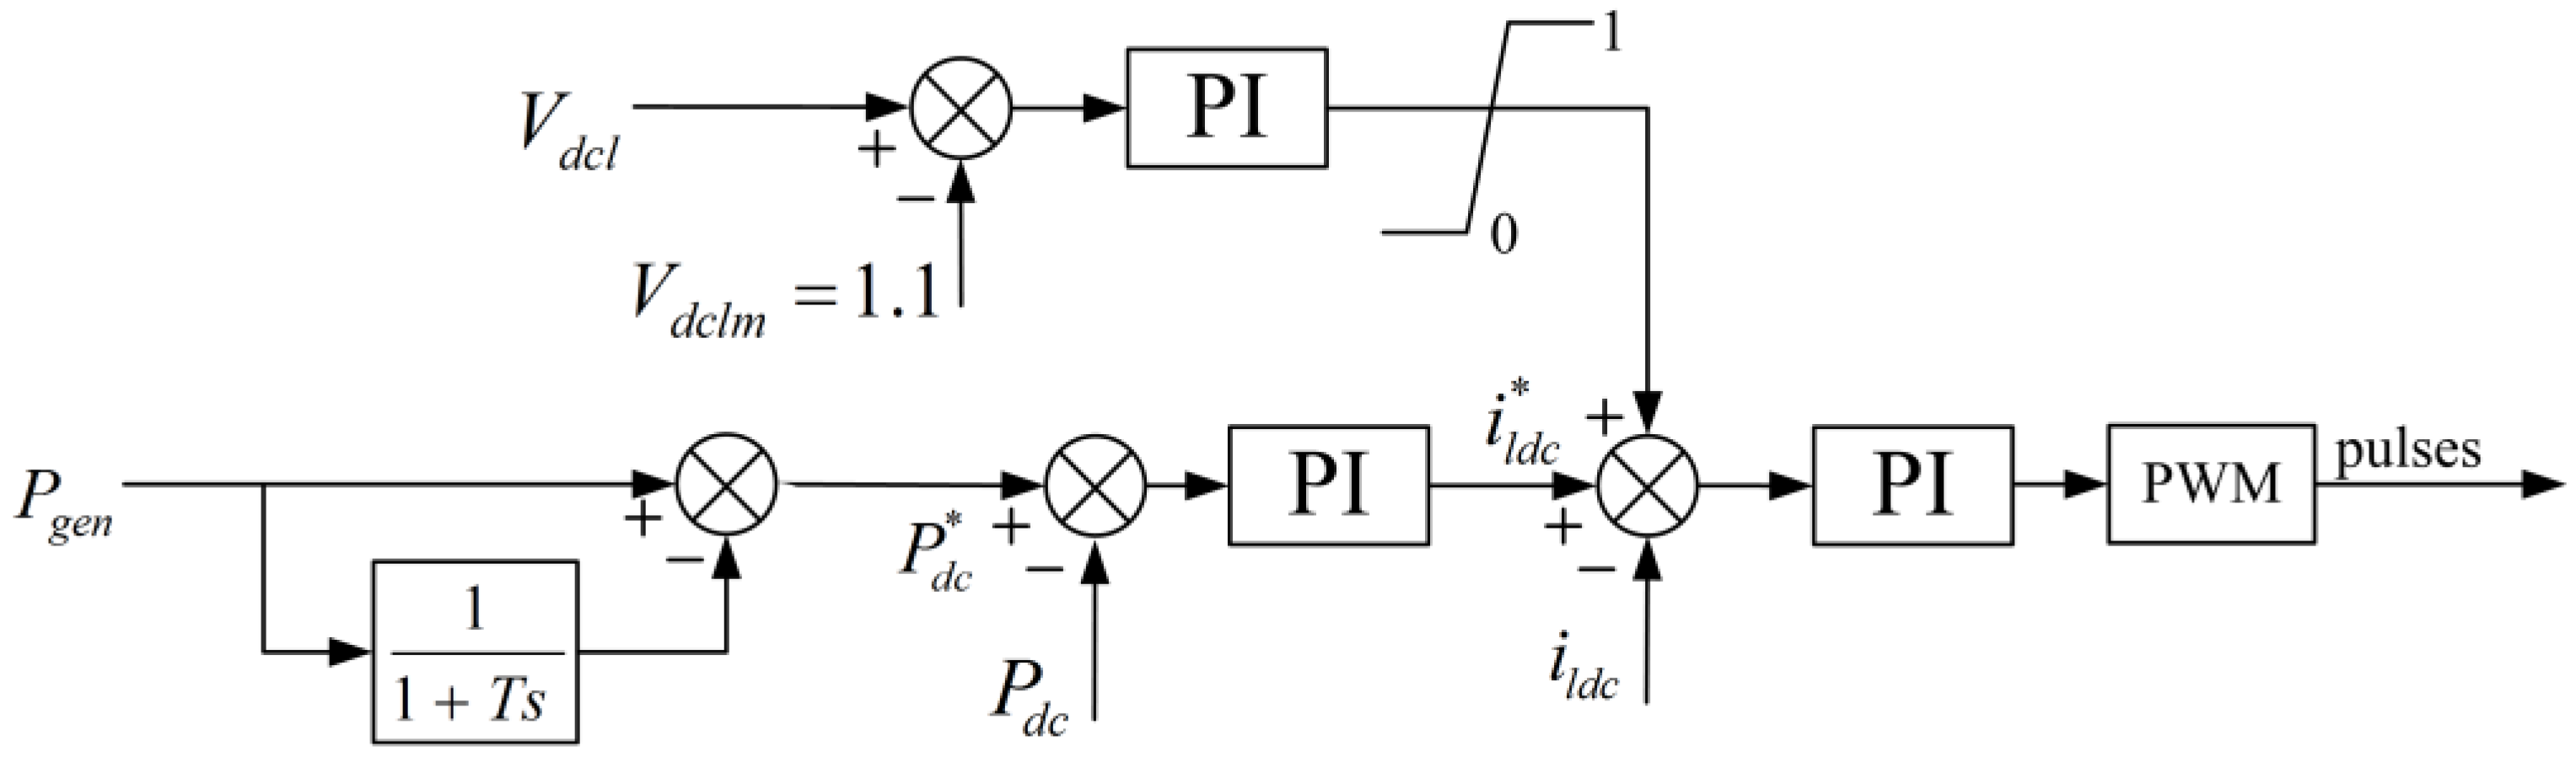 Energies | Free Full-Text | Electronic Power Transformer Control ...